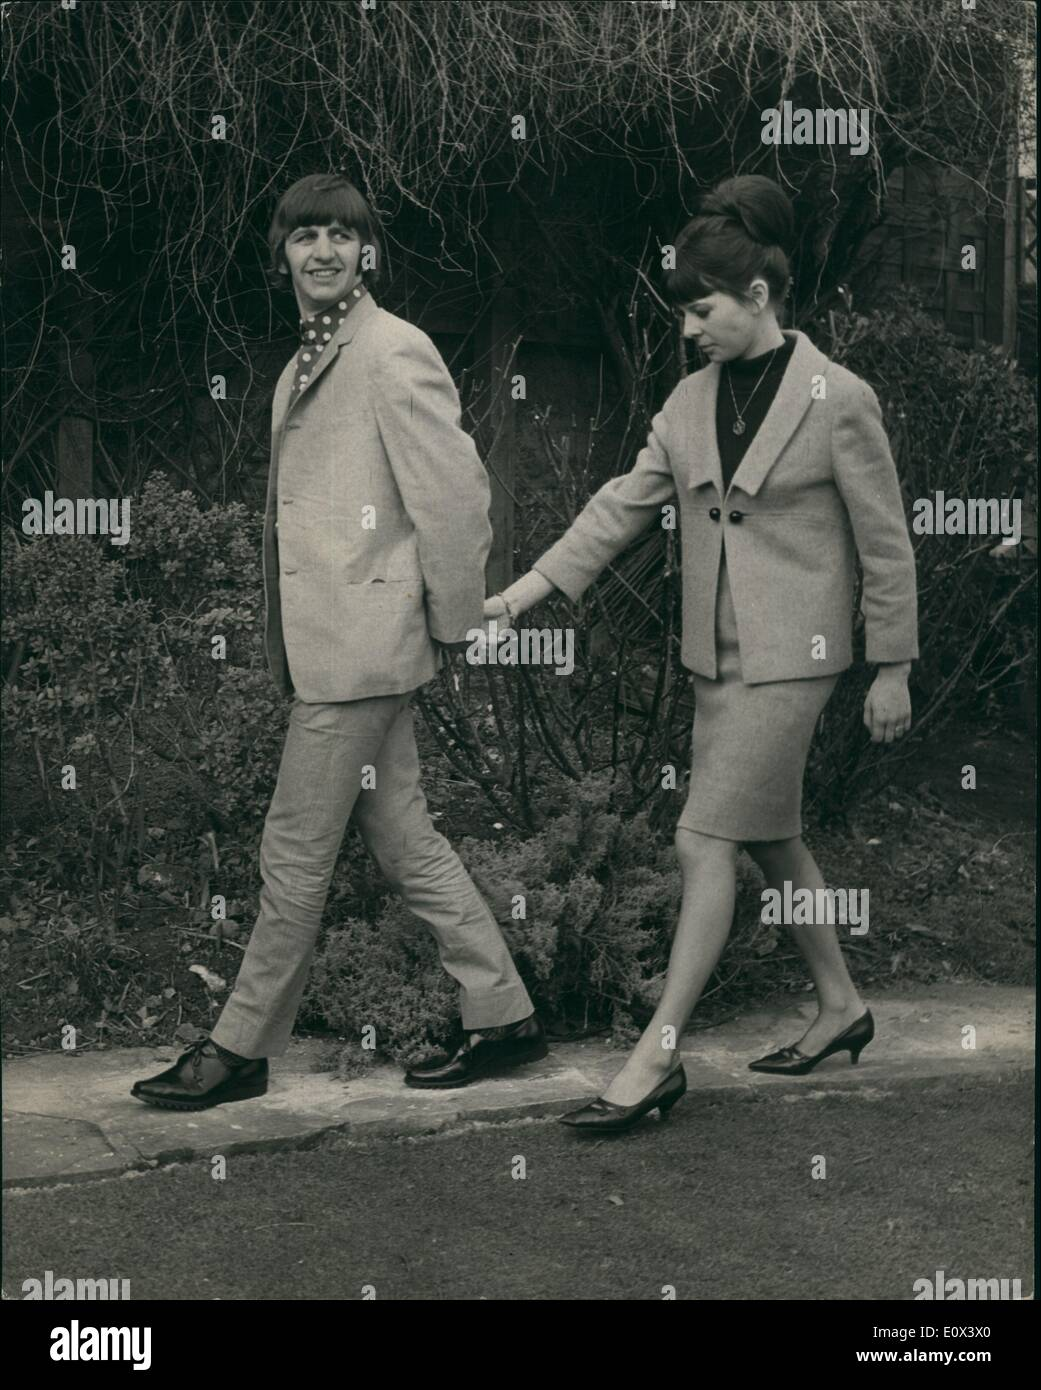 Feb. 02, 1965 - Ringo And His Bride - Meet The Press ''Secret'' Hideout - At Brighton: Ringo Starr of The Beatles - and his bride of 24 Hours Mary Cox - met besigned by members of the press today - at the house in Hove, Sussex - which was supposed to be their secret Wedding hideout. The couple were married at 8-15 yesterday morning at London's Caxto Hall. Photo shows Richard Starket (Ringo Starr) and his beside - at the house in Brighton this afternoon. - Stock Image